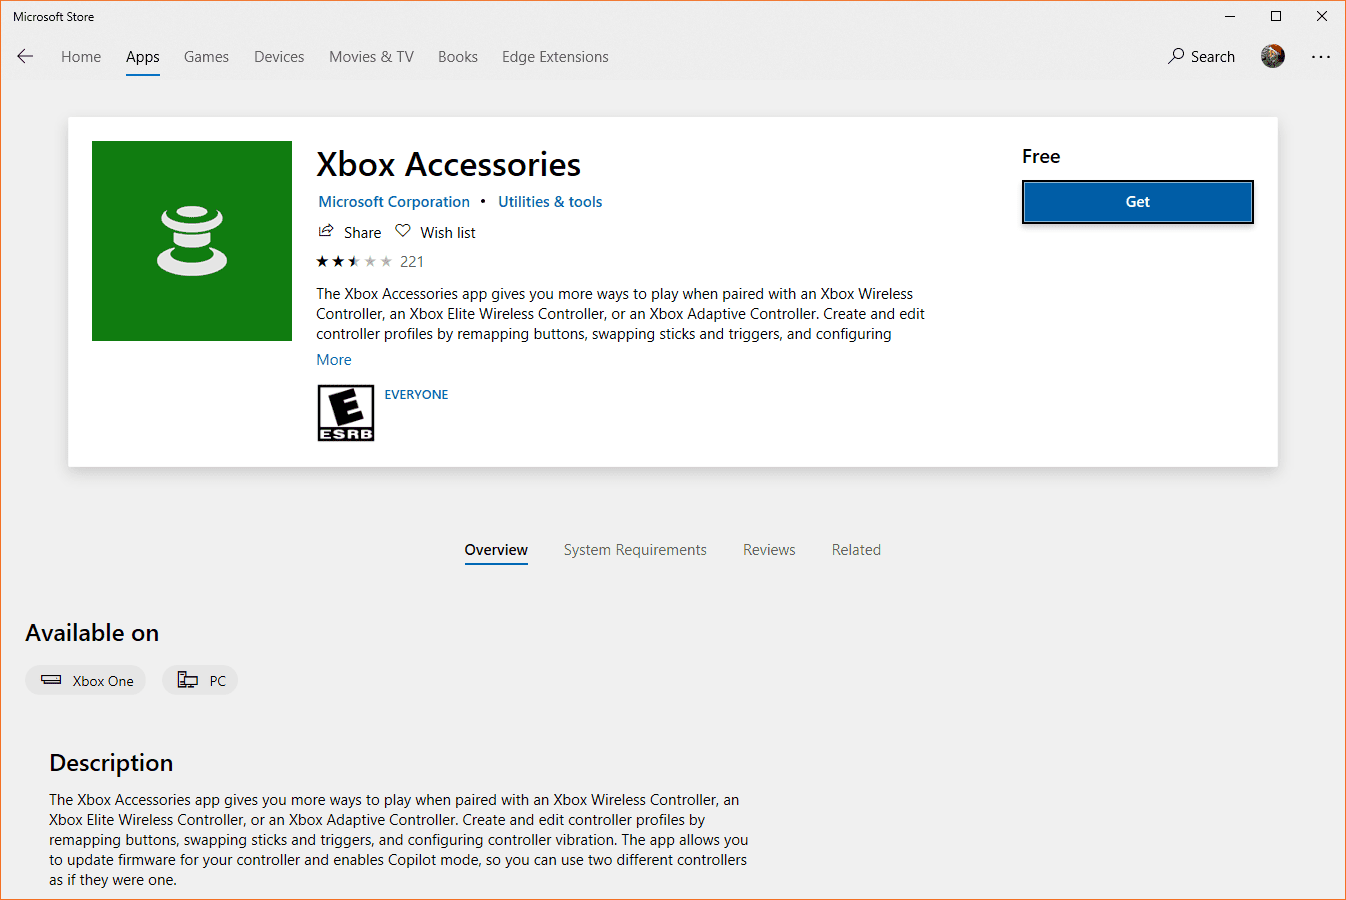 A screenshot of the Xbox Accessories app on the Microsoft Store.